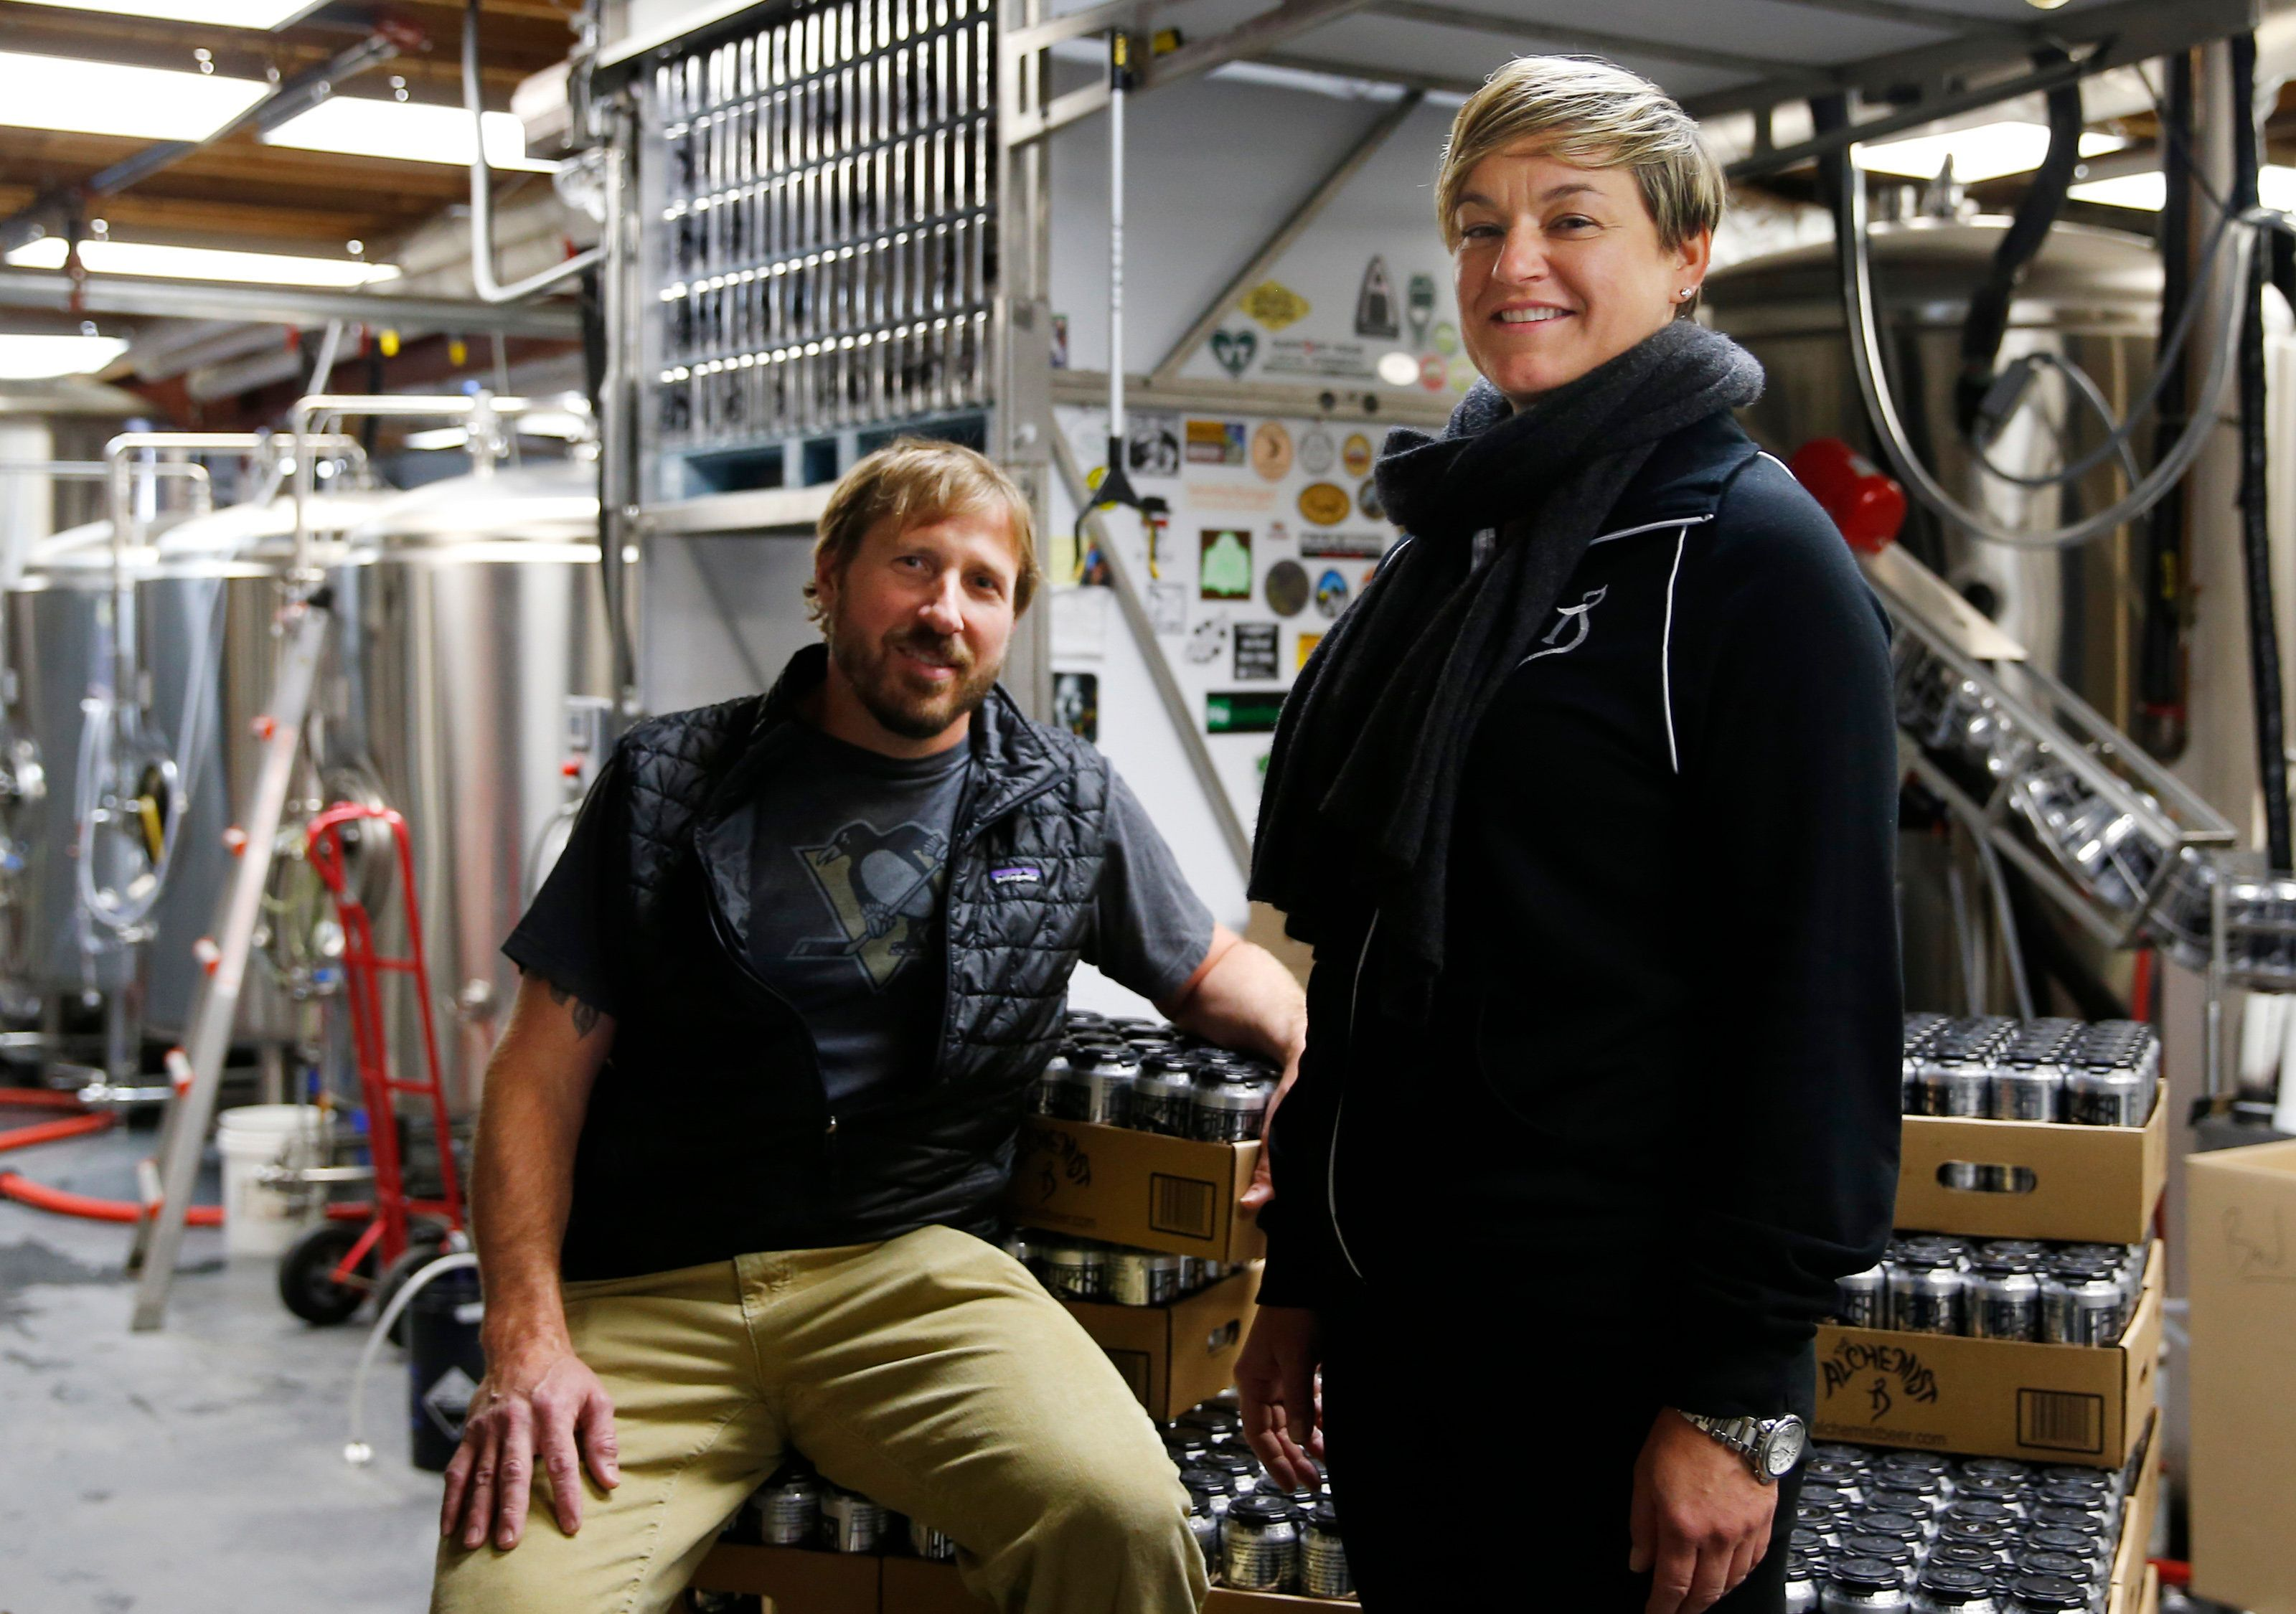 WATERBURY, VT - JANUARY 21: Alchemist brewery owners John and Jen Kimmich pose for a portrait while sitting on stacks of Heady Topper in Waterbury, VT on Jan. 21, 2015. (Photo by Jessica Rinaldi/The Boston Globe via Getty Images)